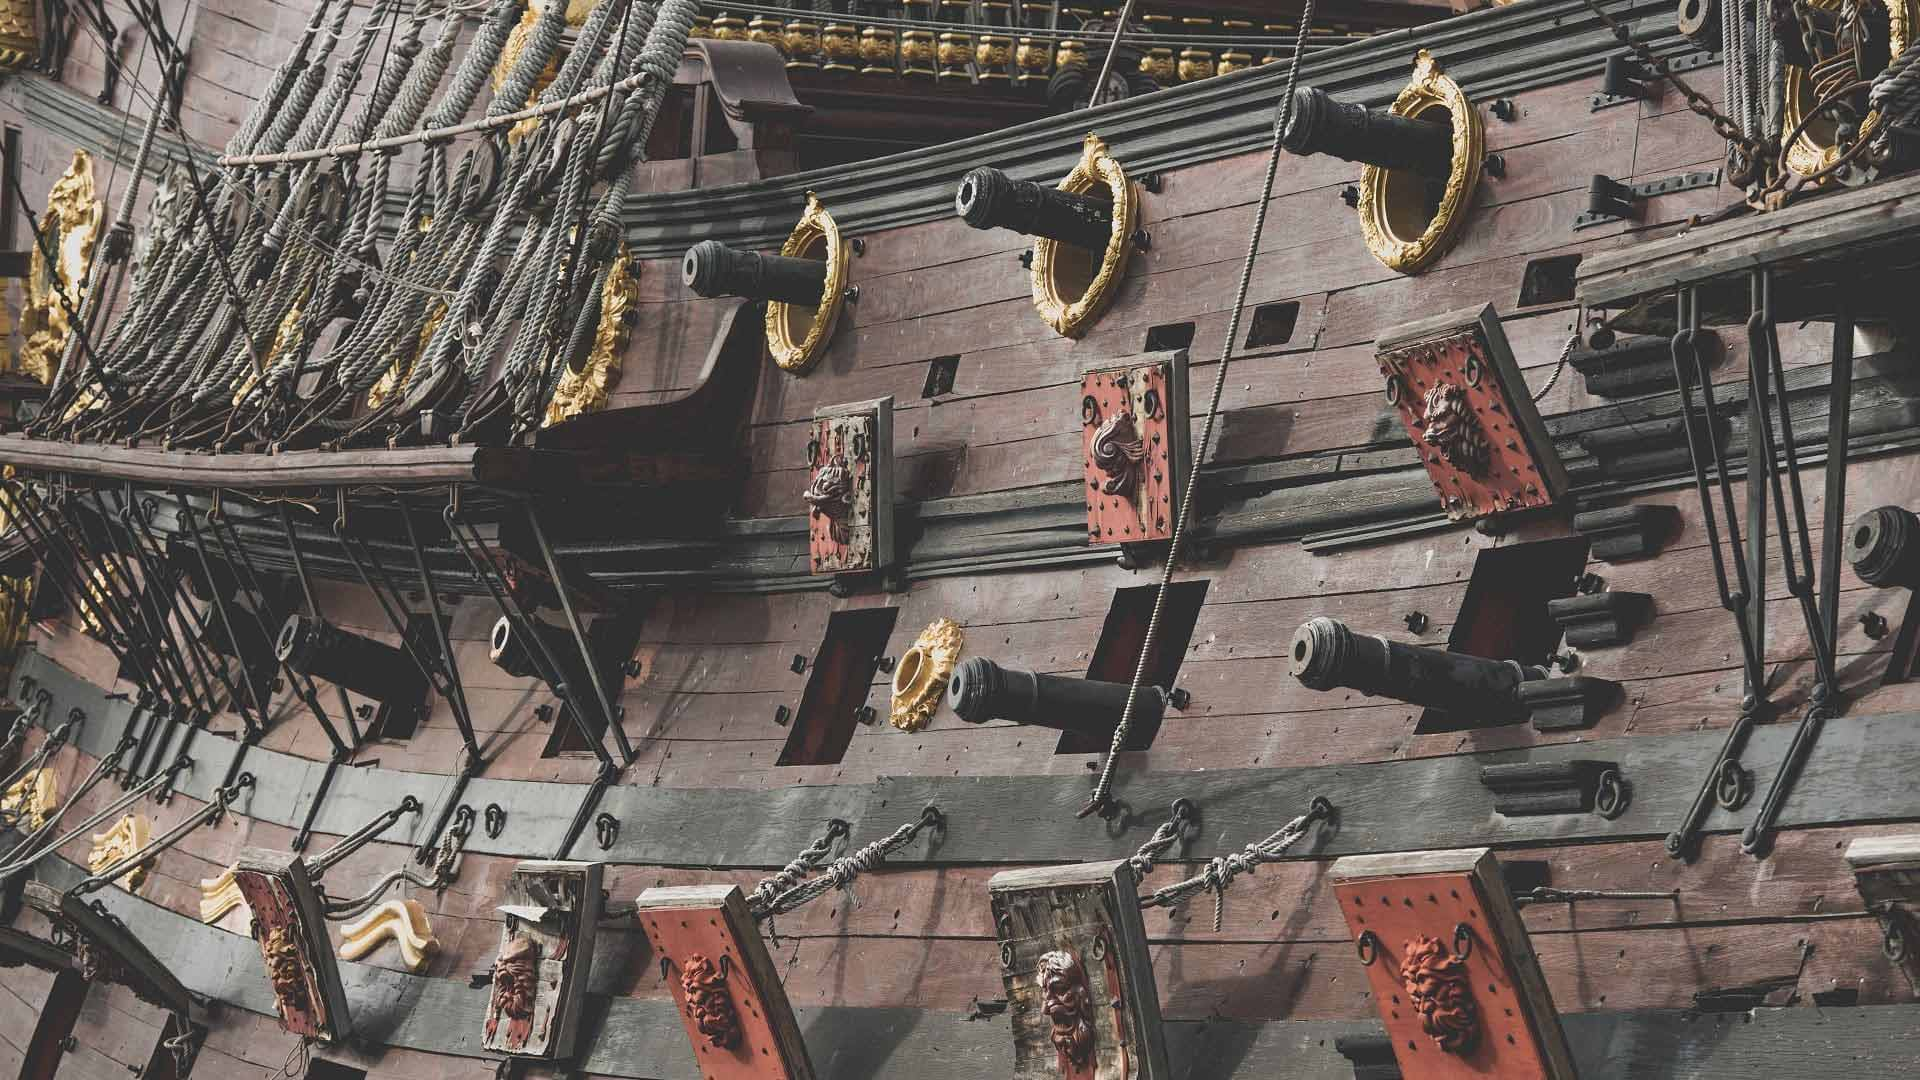 Cannons sticking out from the side a Spanish galleon sailing ship